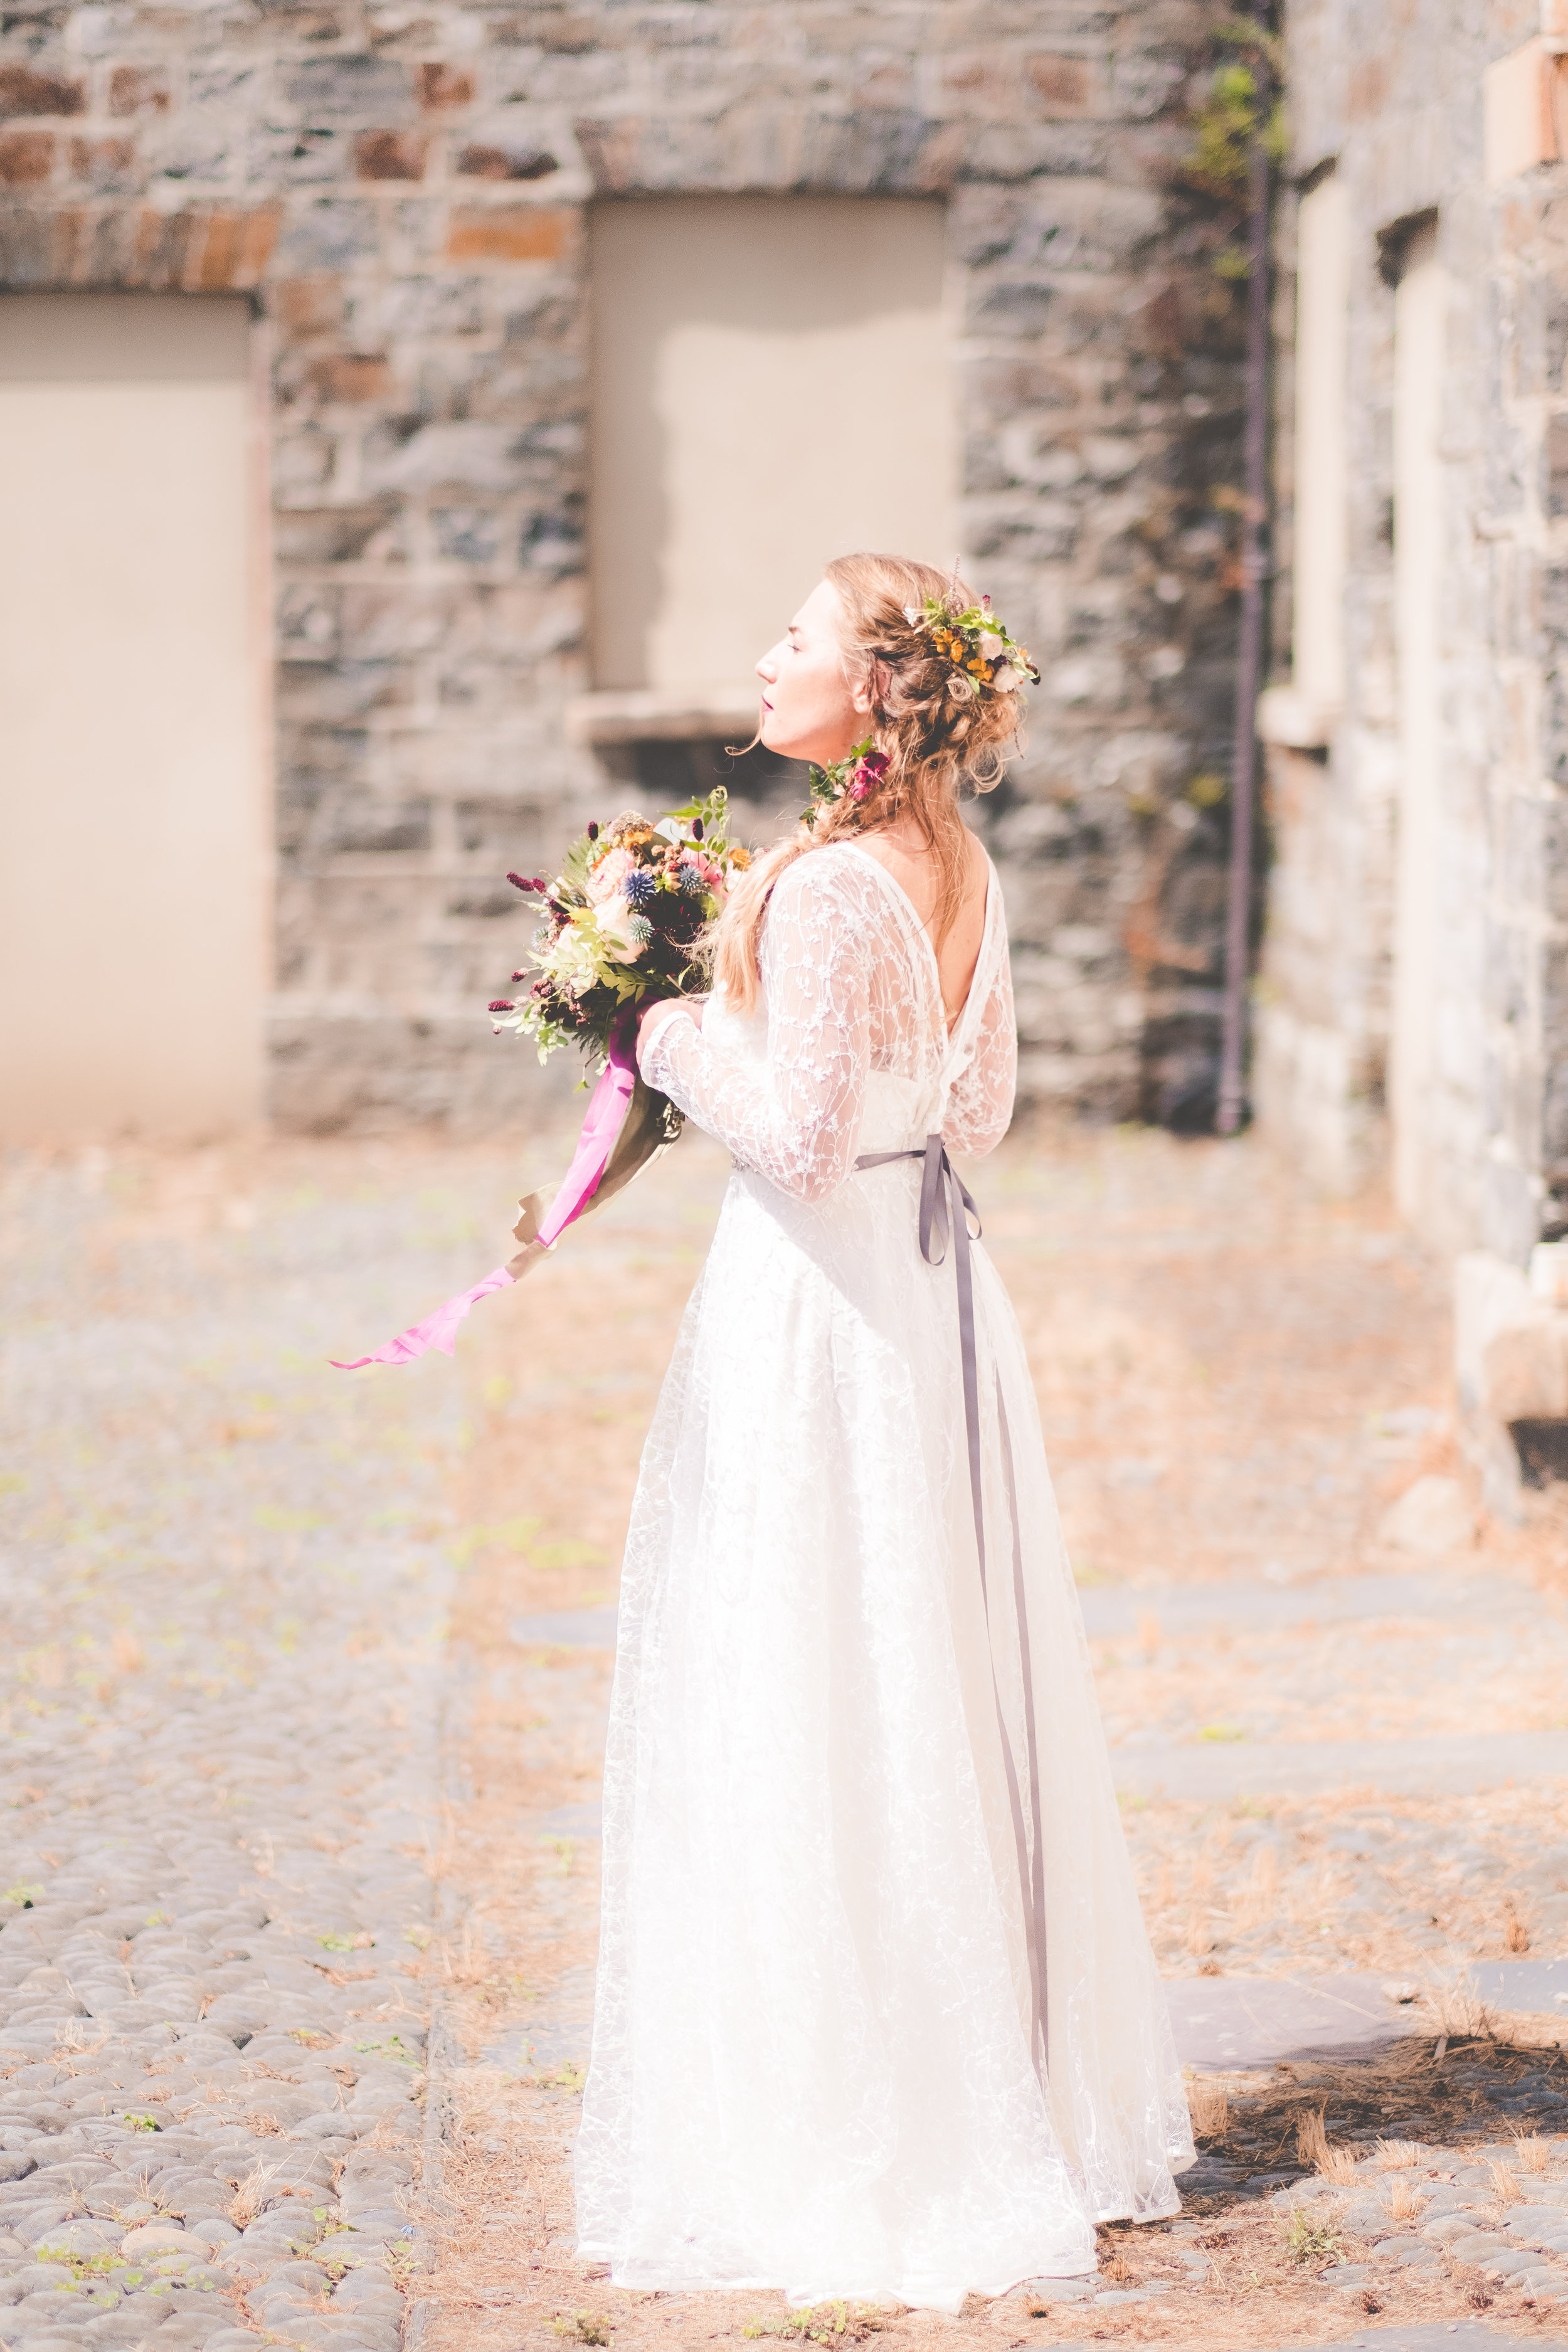 Nanteo's Styled Shoot - Images by Jon Turtle - Photographer-146.jpg